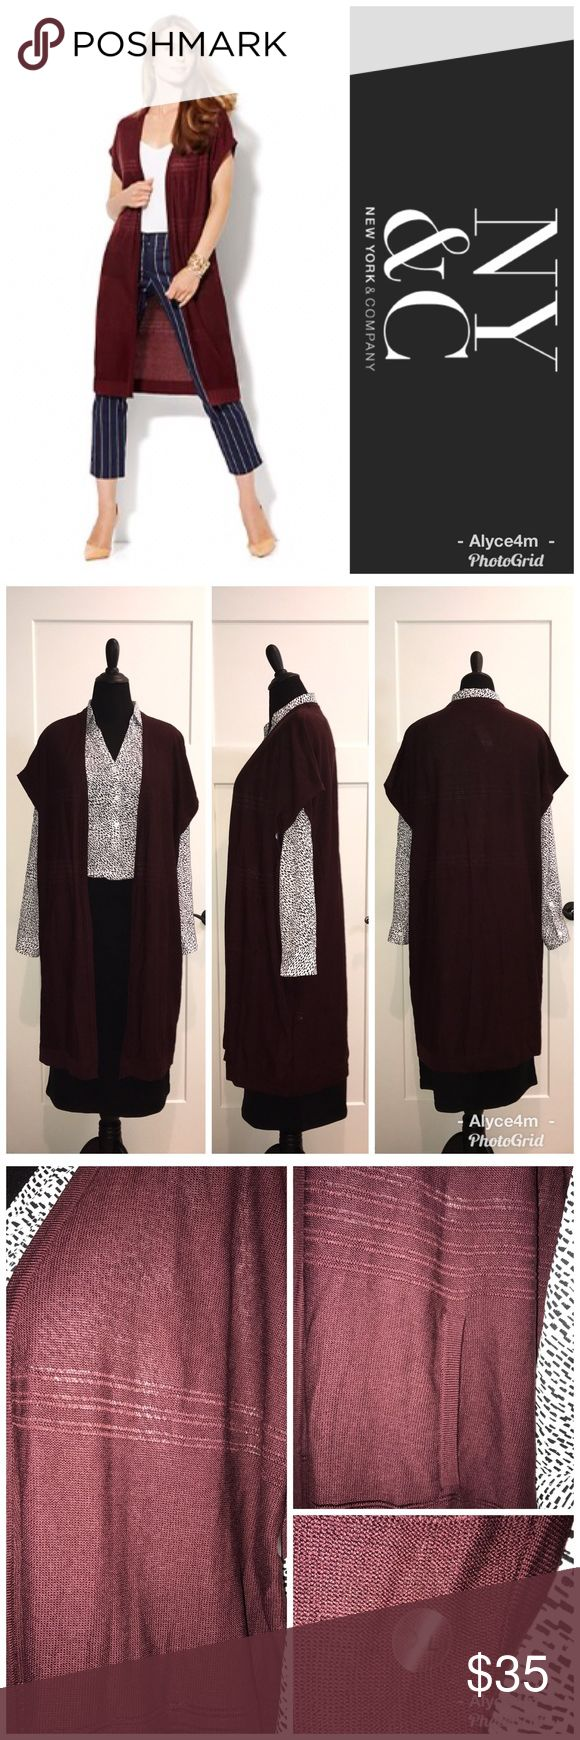 """🌺Duster Cardigan🌺 NY&Co Open Stitch Duster Cardigan  NWT Size XL Color Black Cherry (Burgundy)  🔴Mannequin's measurements  📌Chest 39"""" 📌Waist 33"""" 📌Hips 40 1/2""""  ❤️Pictured w/NY&Co Mercer Tunic & Theo Scuba Skirt also available in separate listings   💰Bundle Your Likes (even just one item) for a Private Discount💰 🌸reasonable offers accepted🌸  🐾pet friendlly home🐾 🚫no trades🚫 New York & Company Sweaters Cardigans"""